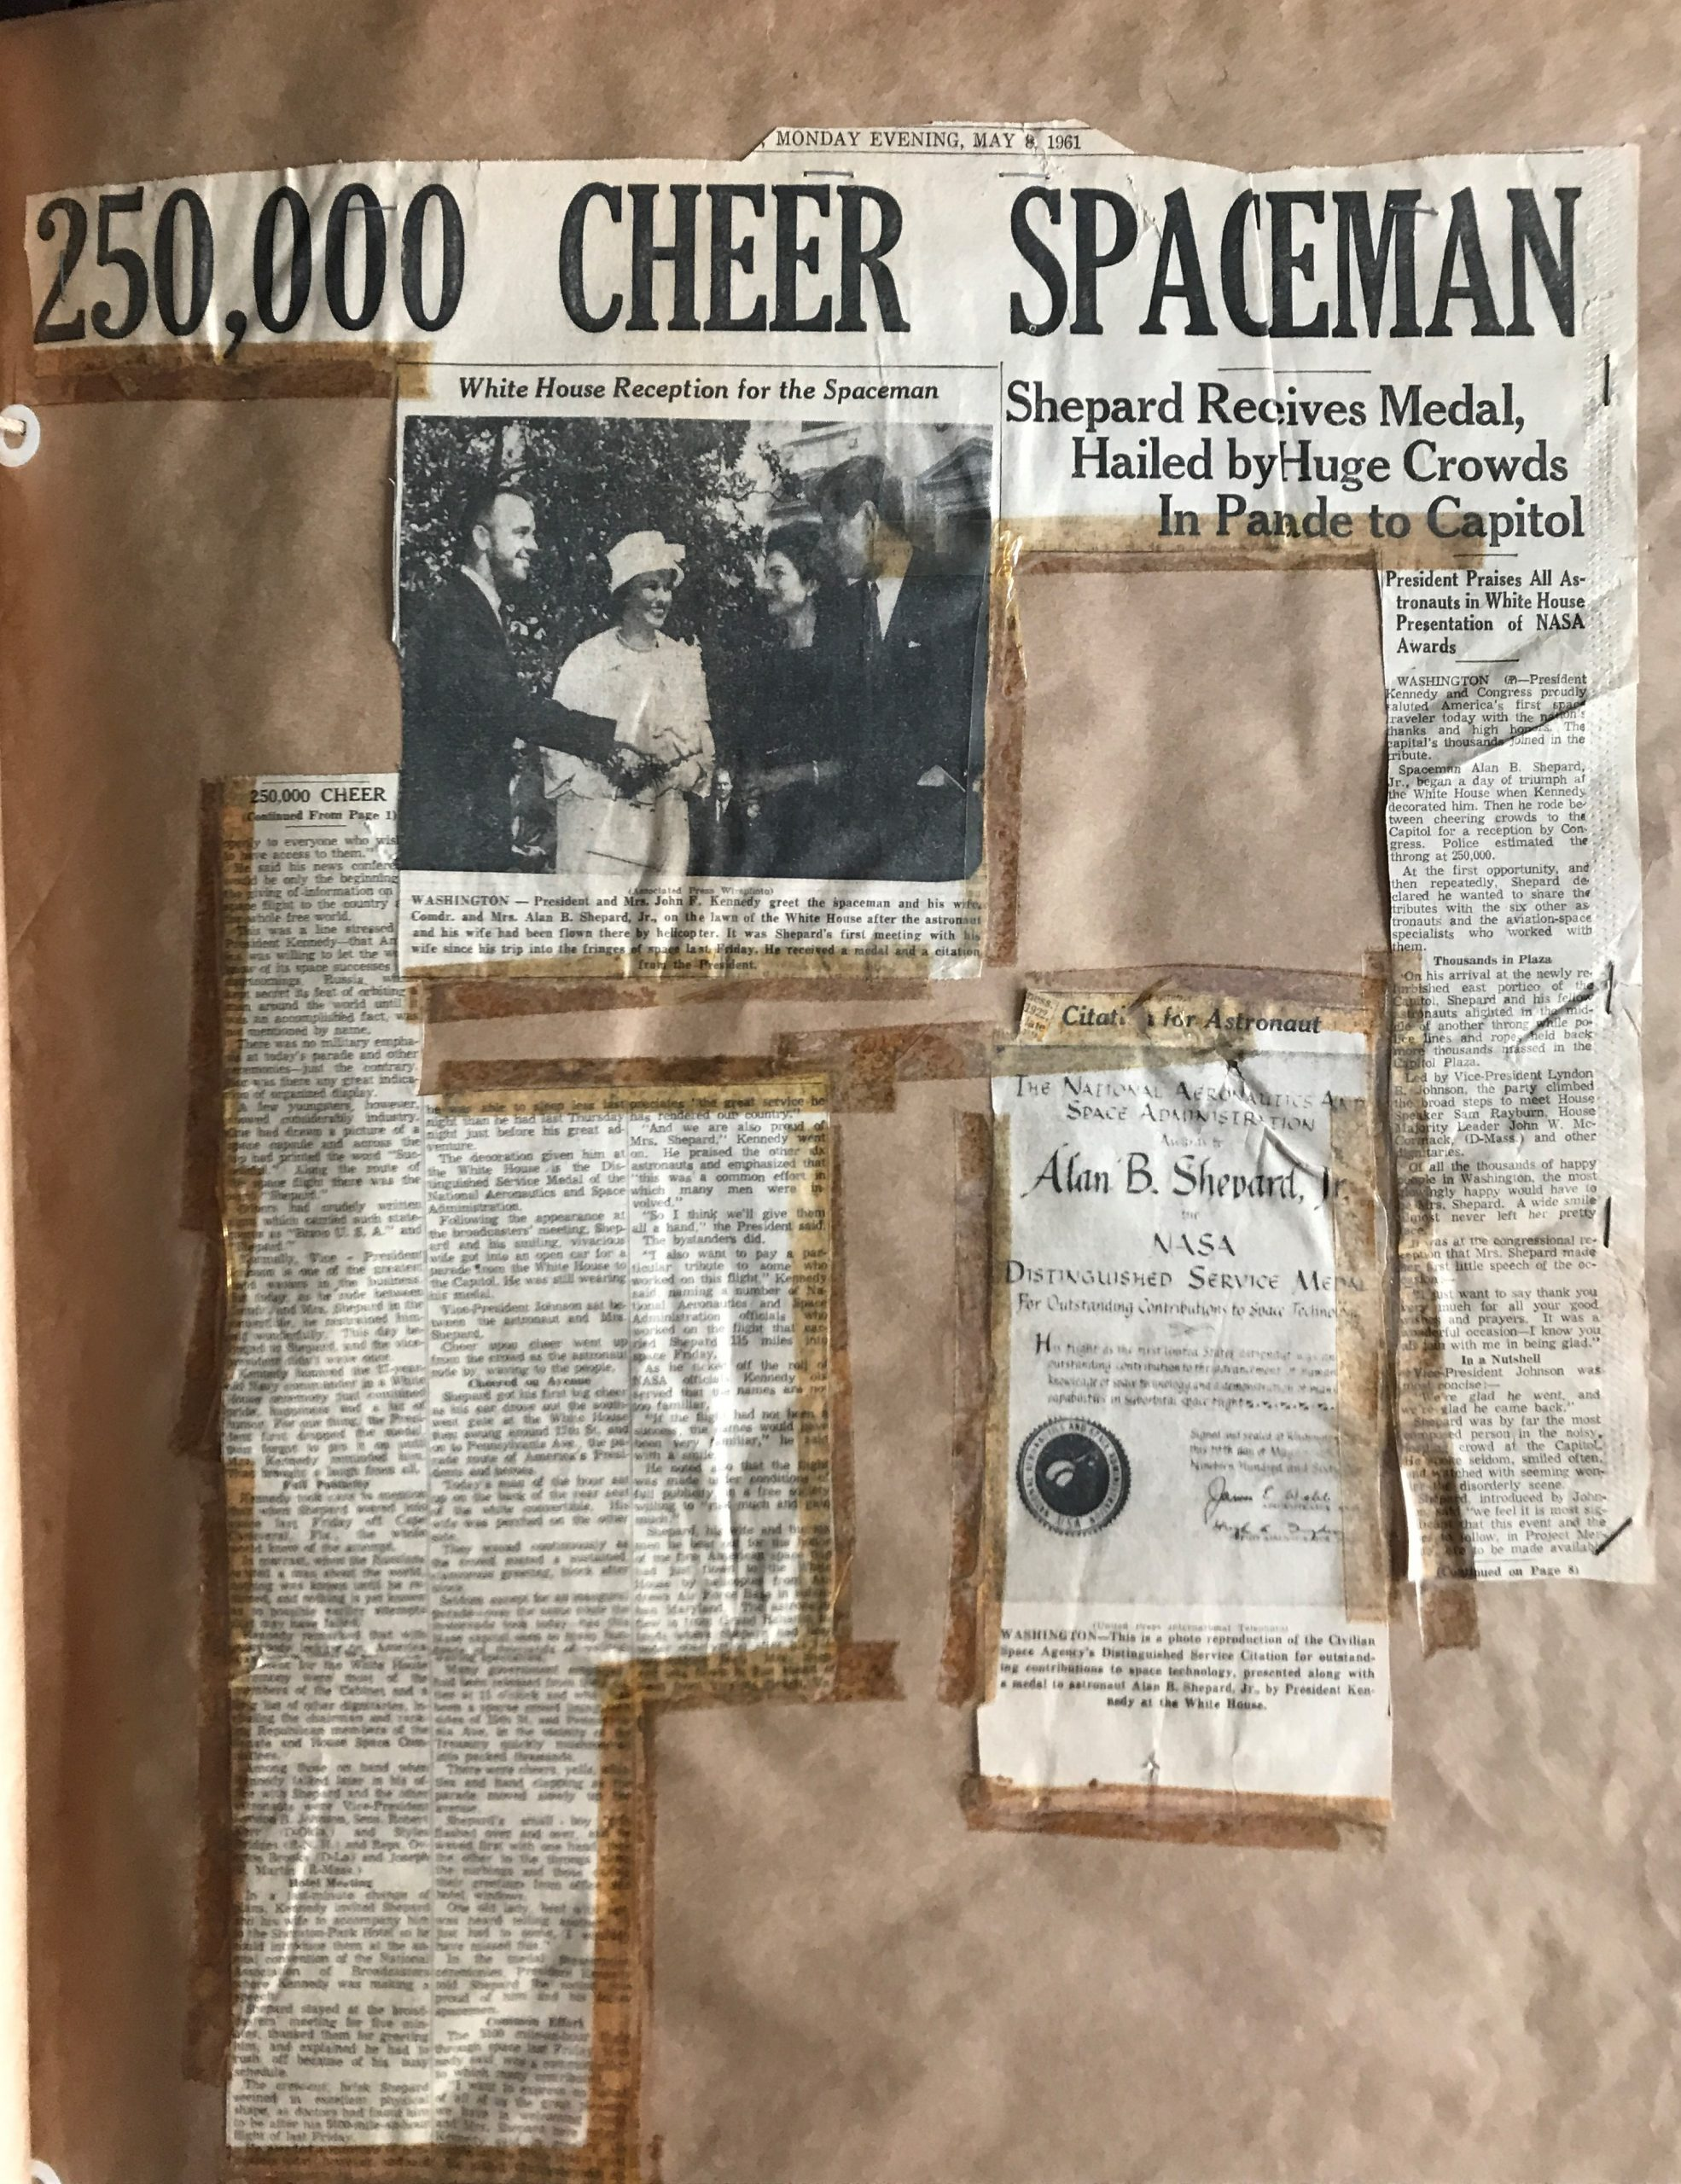 Scrapbook Page Reading 250,000 Cheer Spacemen